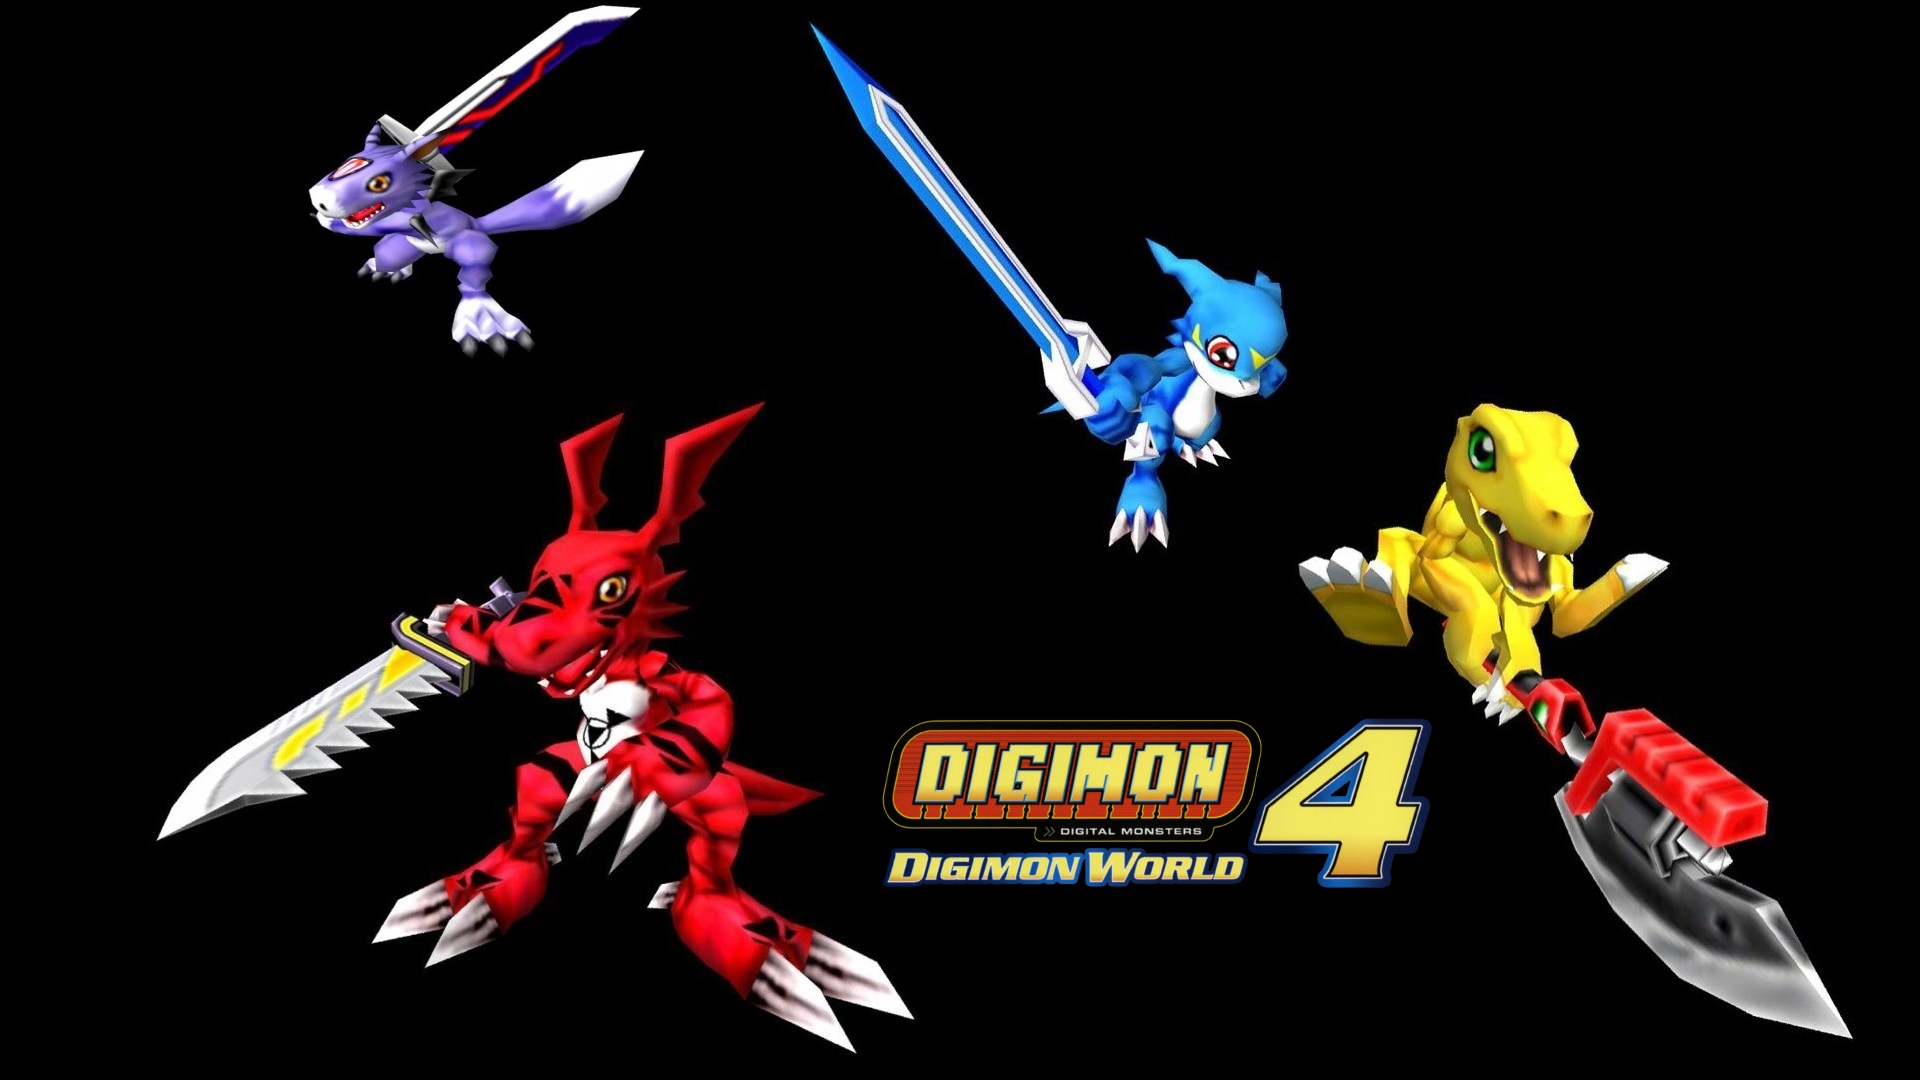 Digimon World 4 Details - LaunchBox Games Database